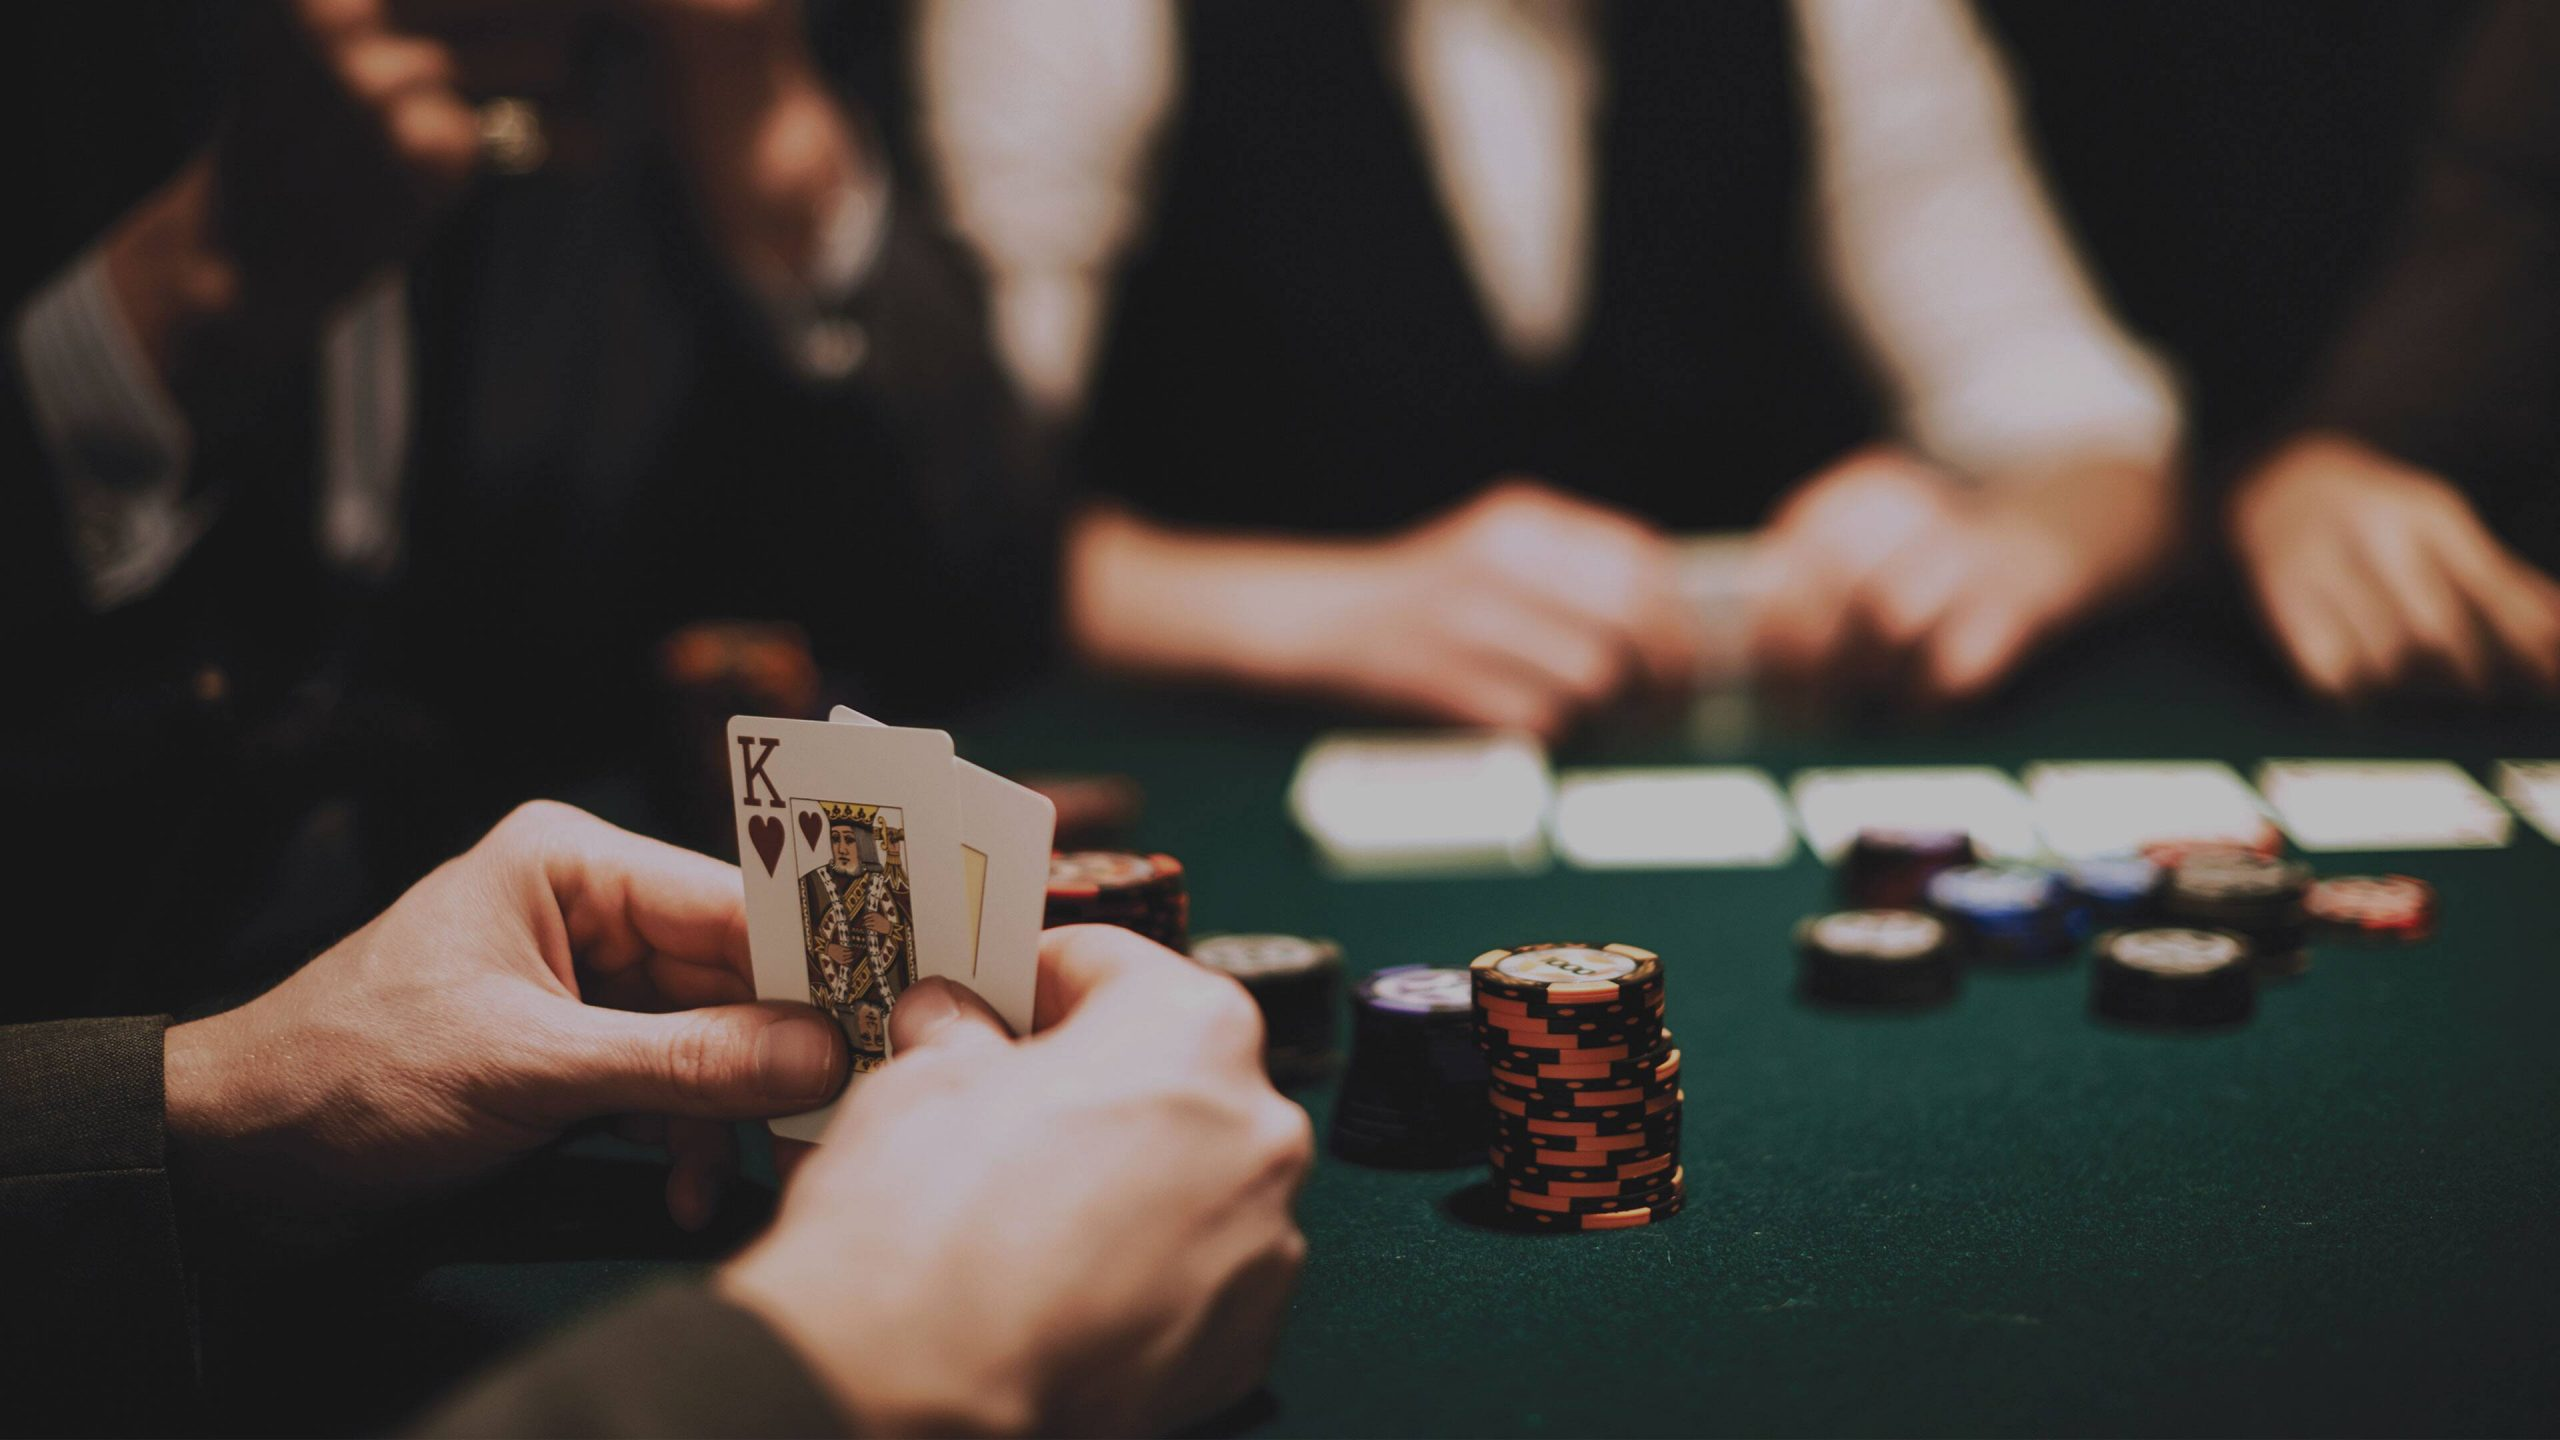 Online Resources For Trusted Games Through Gambling